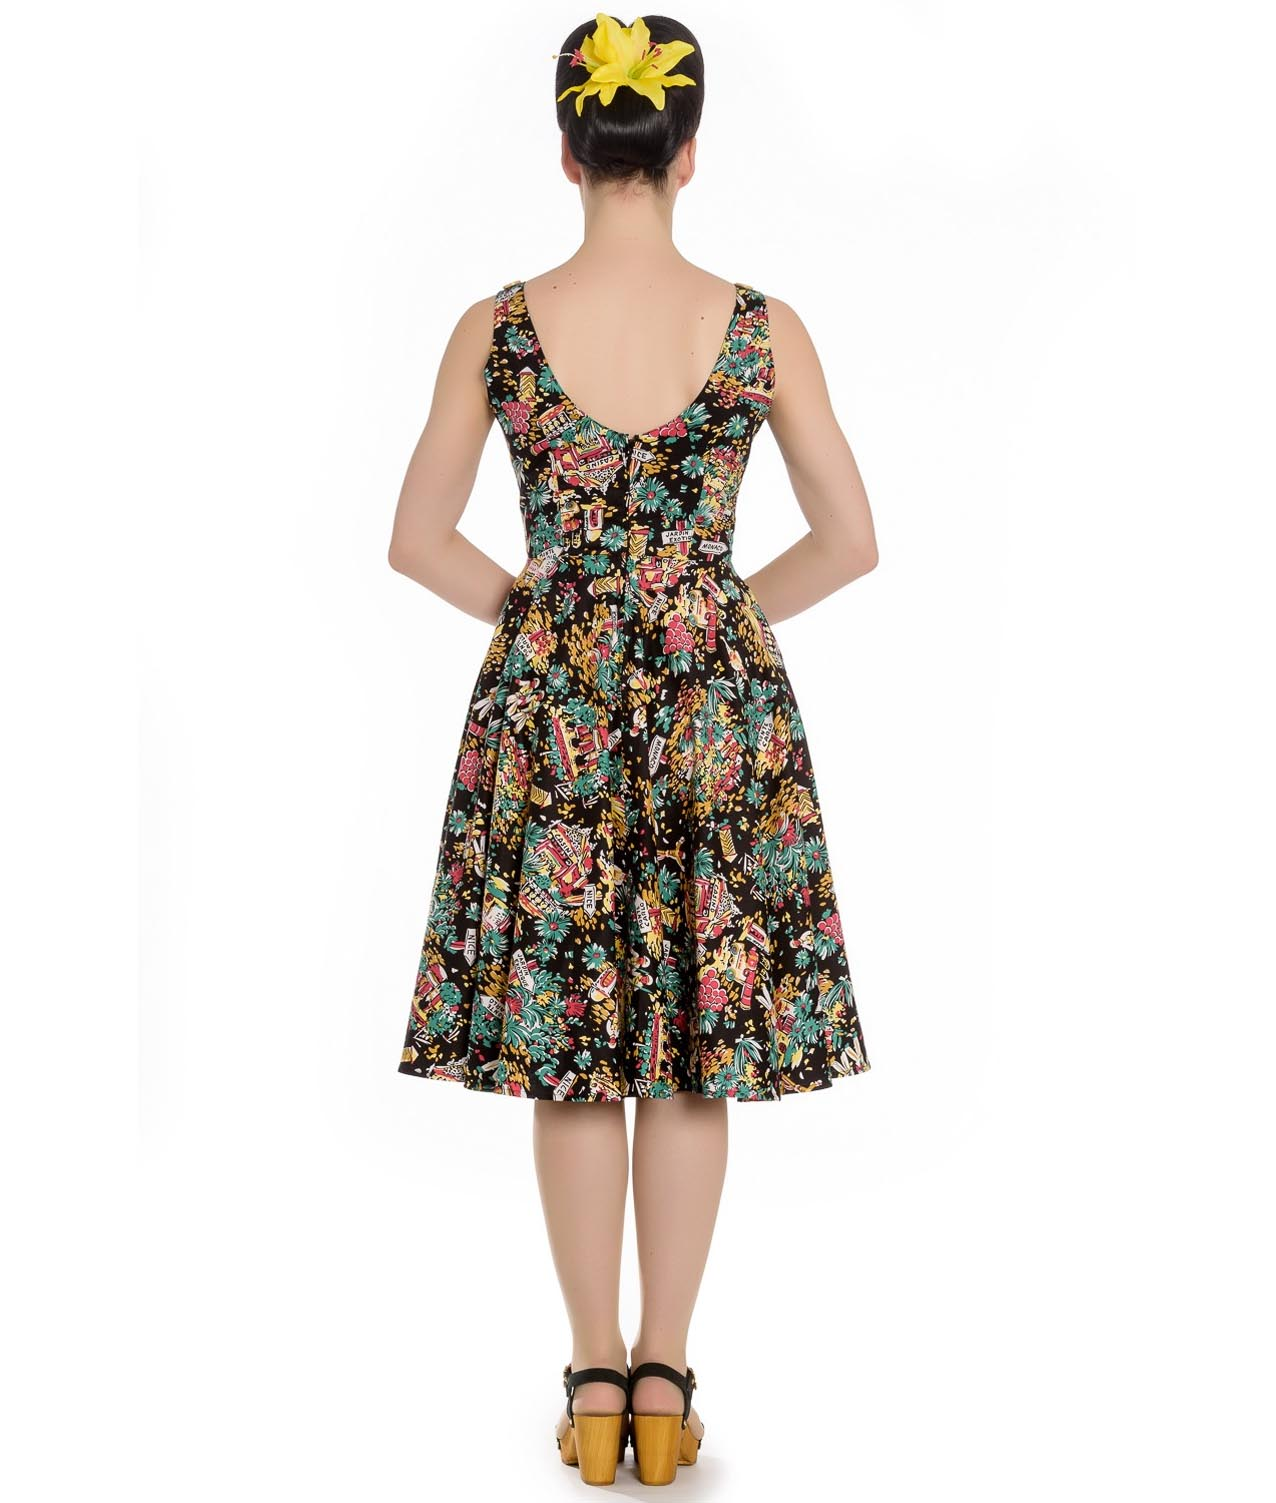 Hell-Bunny-Summer-50s-Black-Dress-MONTE-CARLO-Tropical-Holiday-All-Sizes thumbnail 41